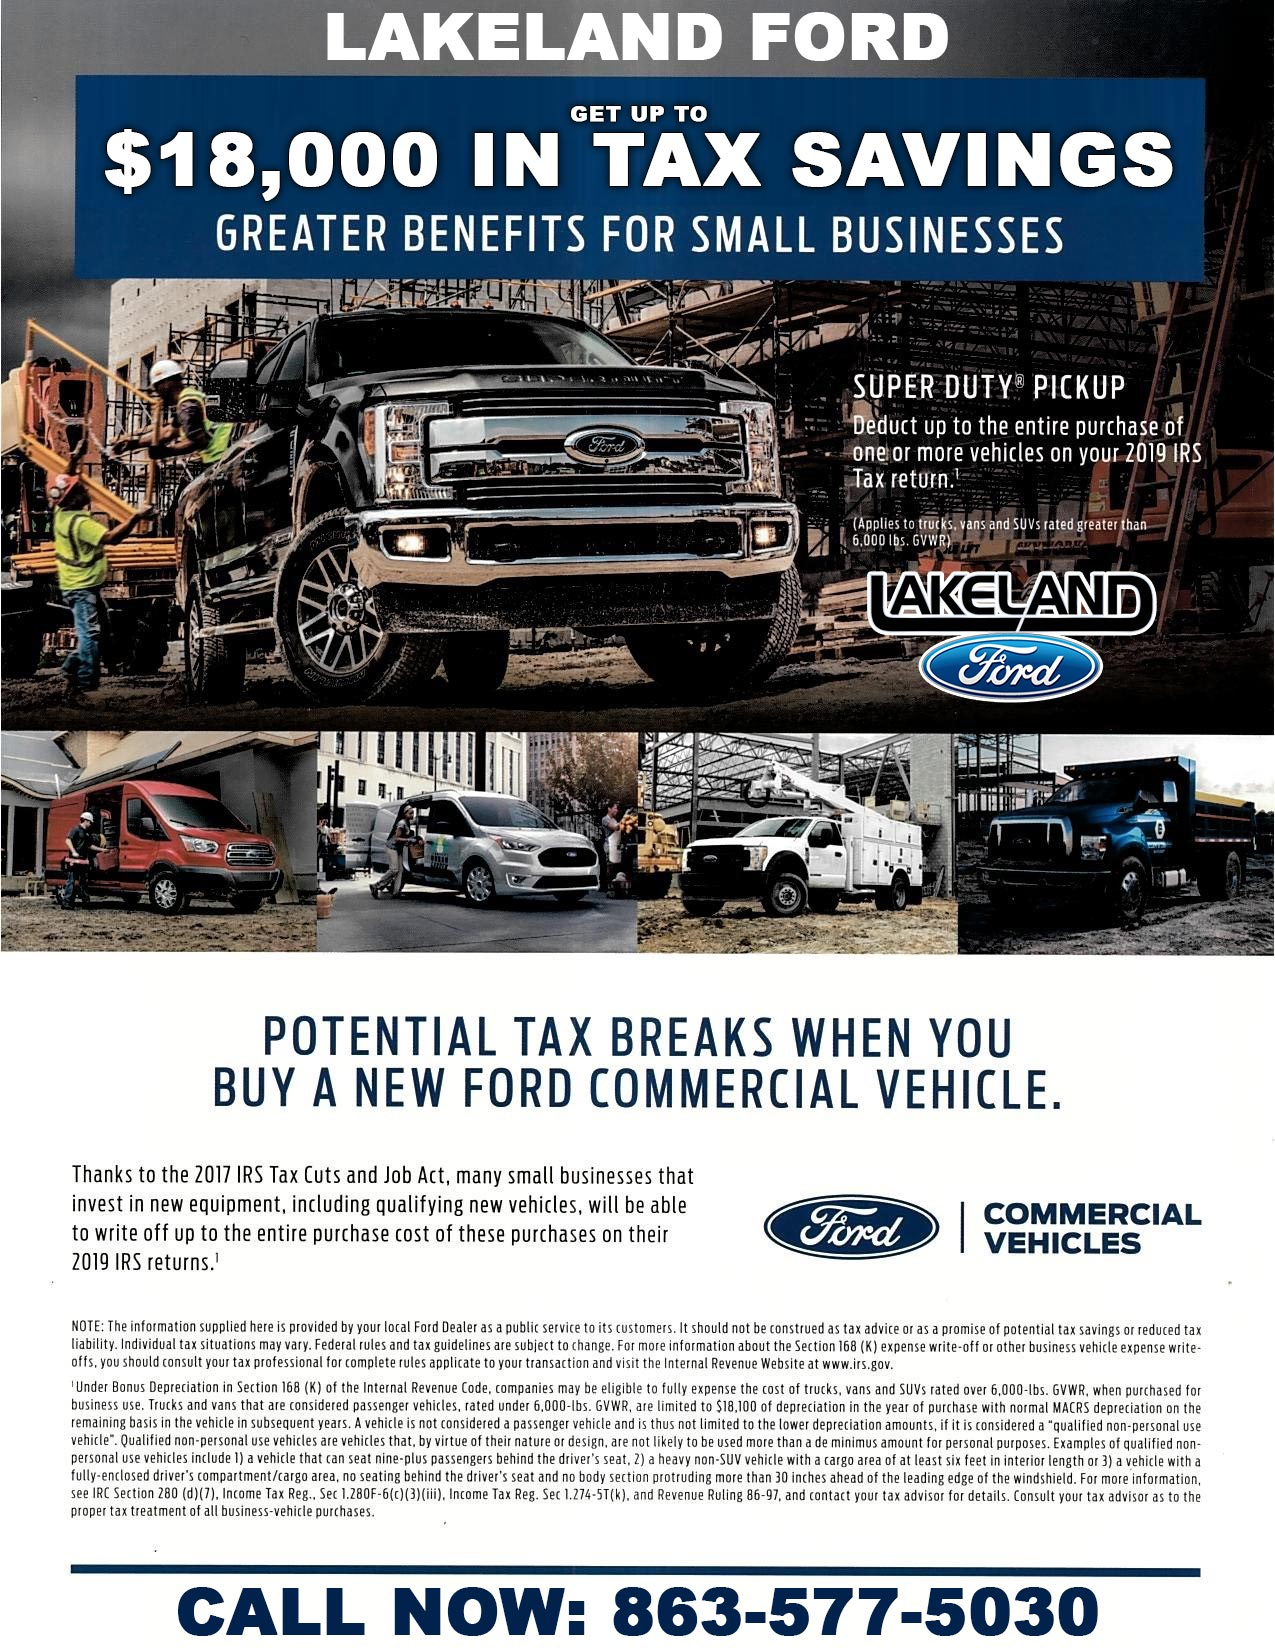 Ford Commercial Vehicle Tax Incentives for 2019